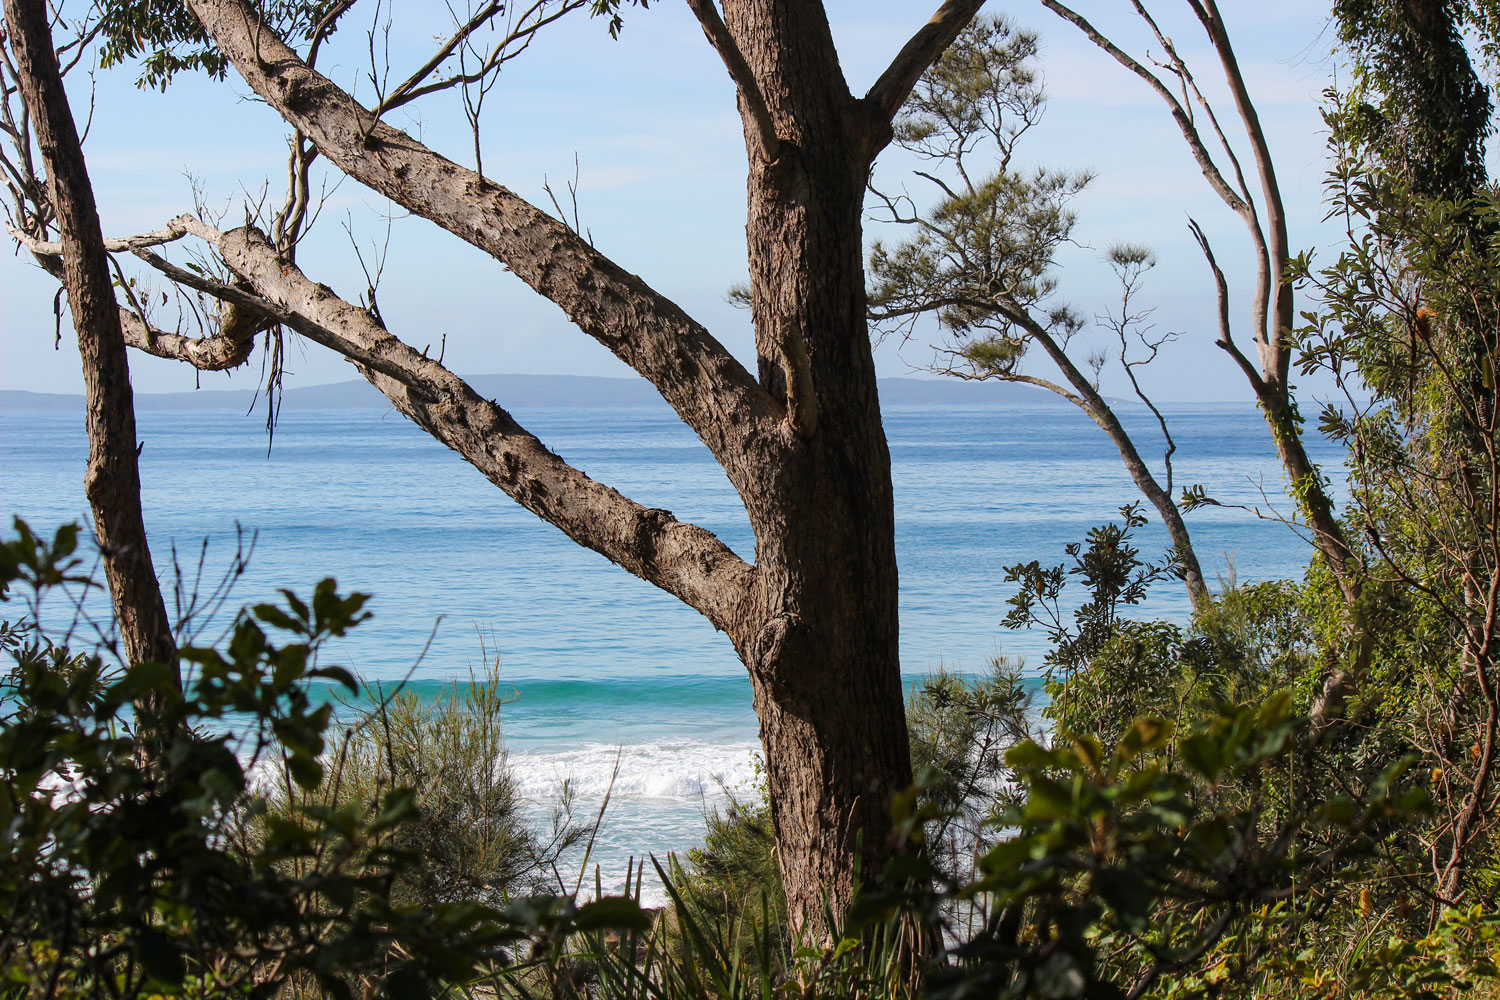 Bush-view-of-beach.jpg